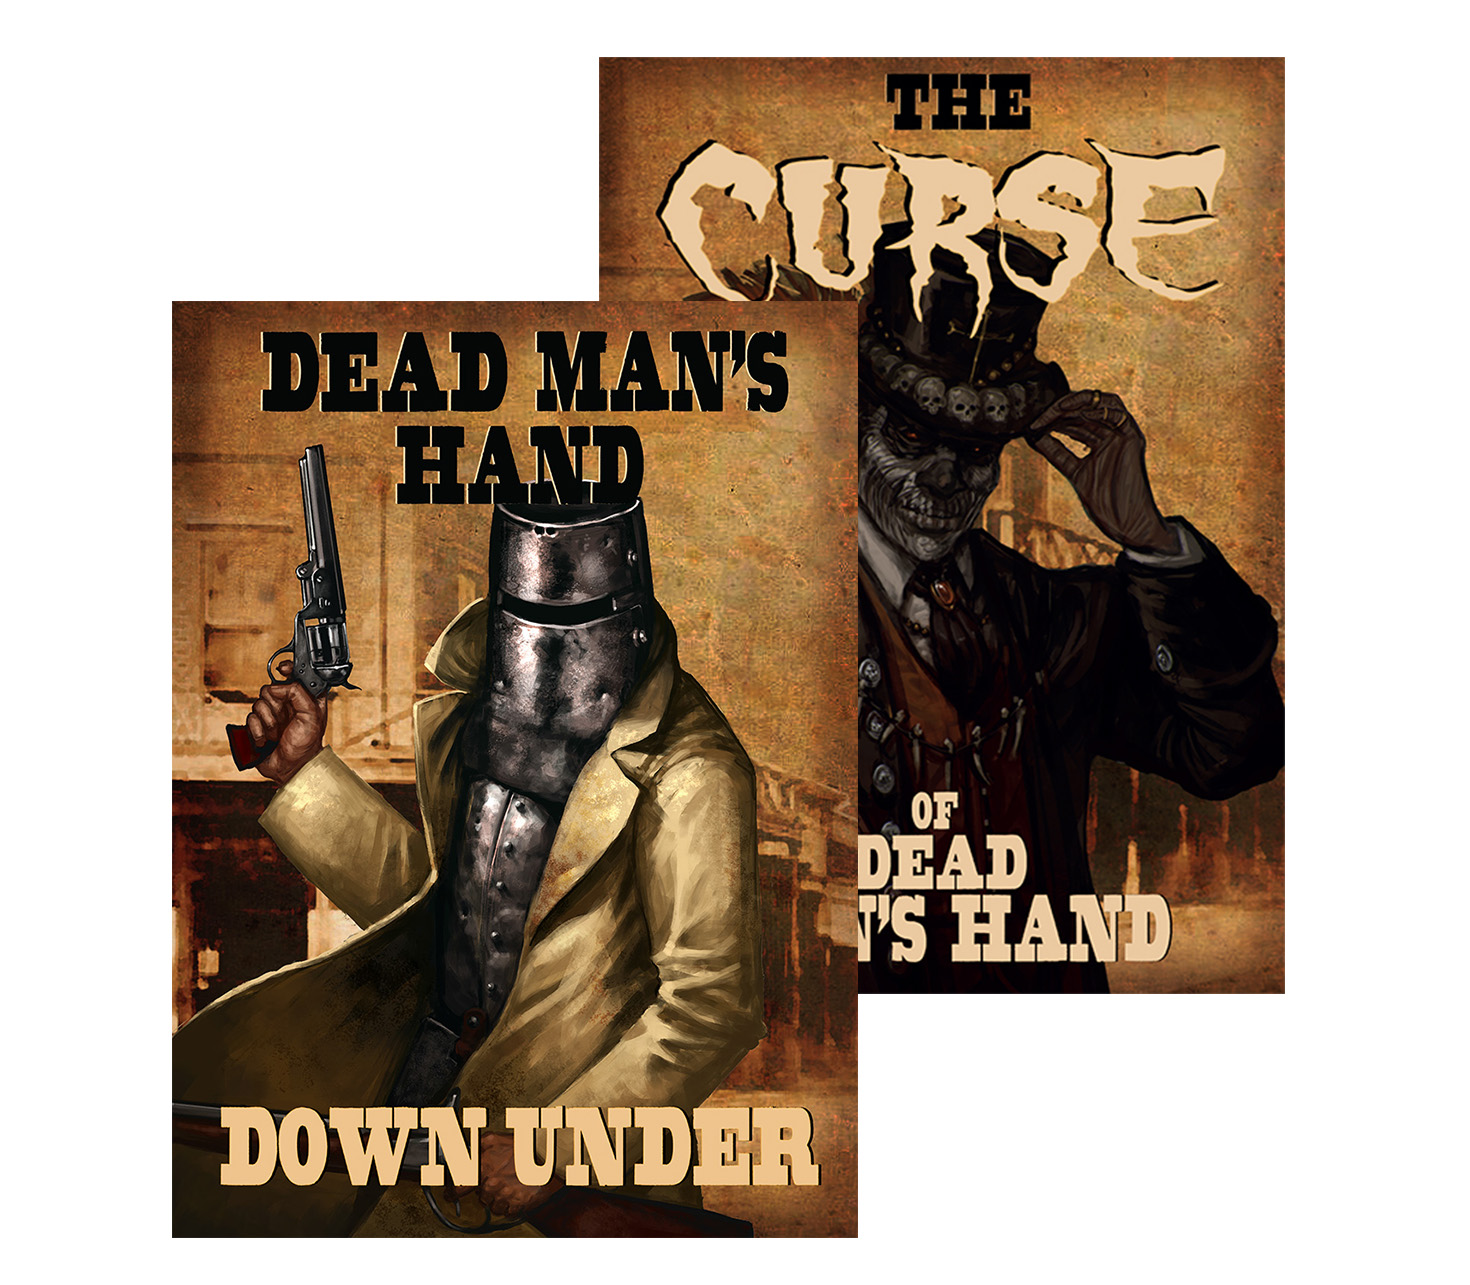 The Curse of Dead Man's Hand Down Under Bundle